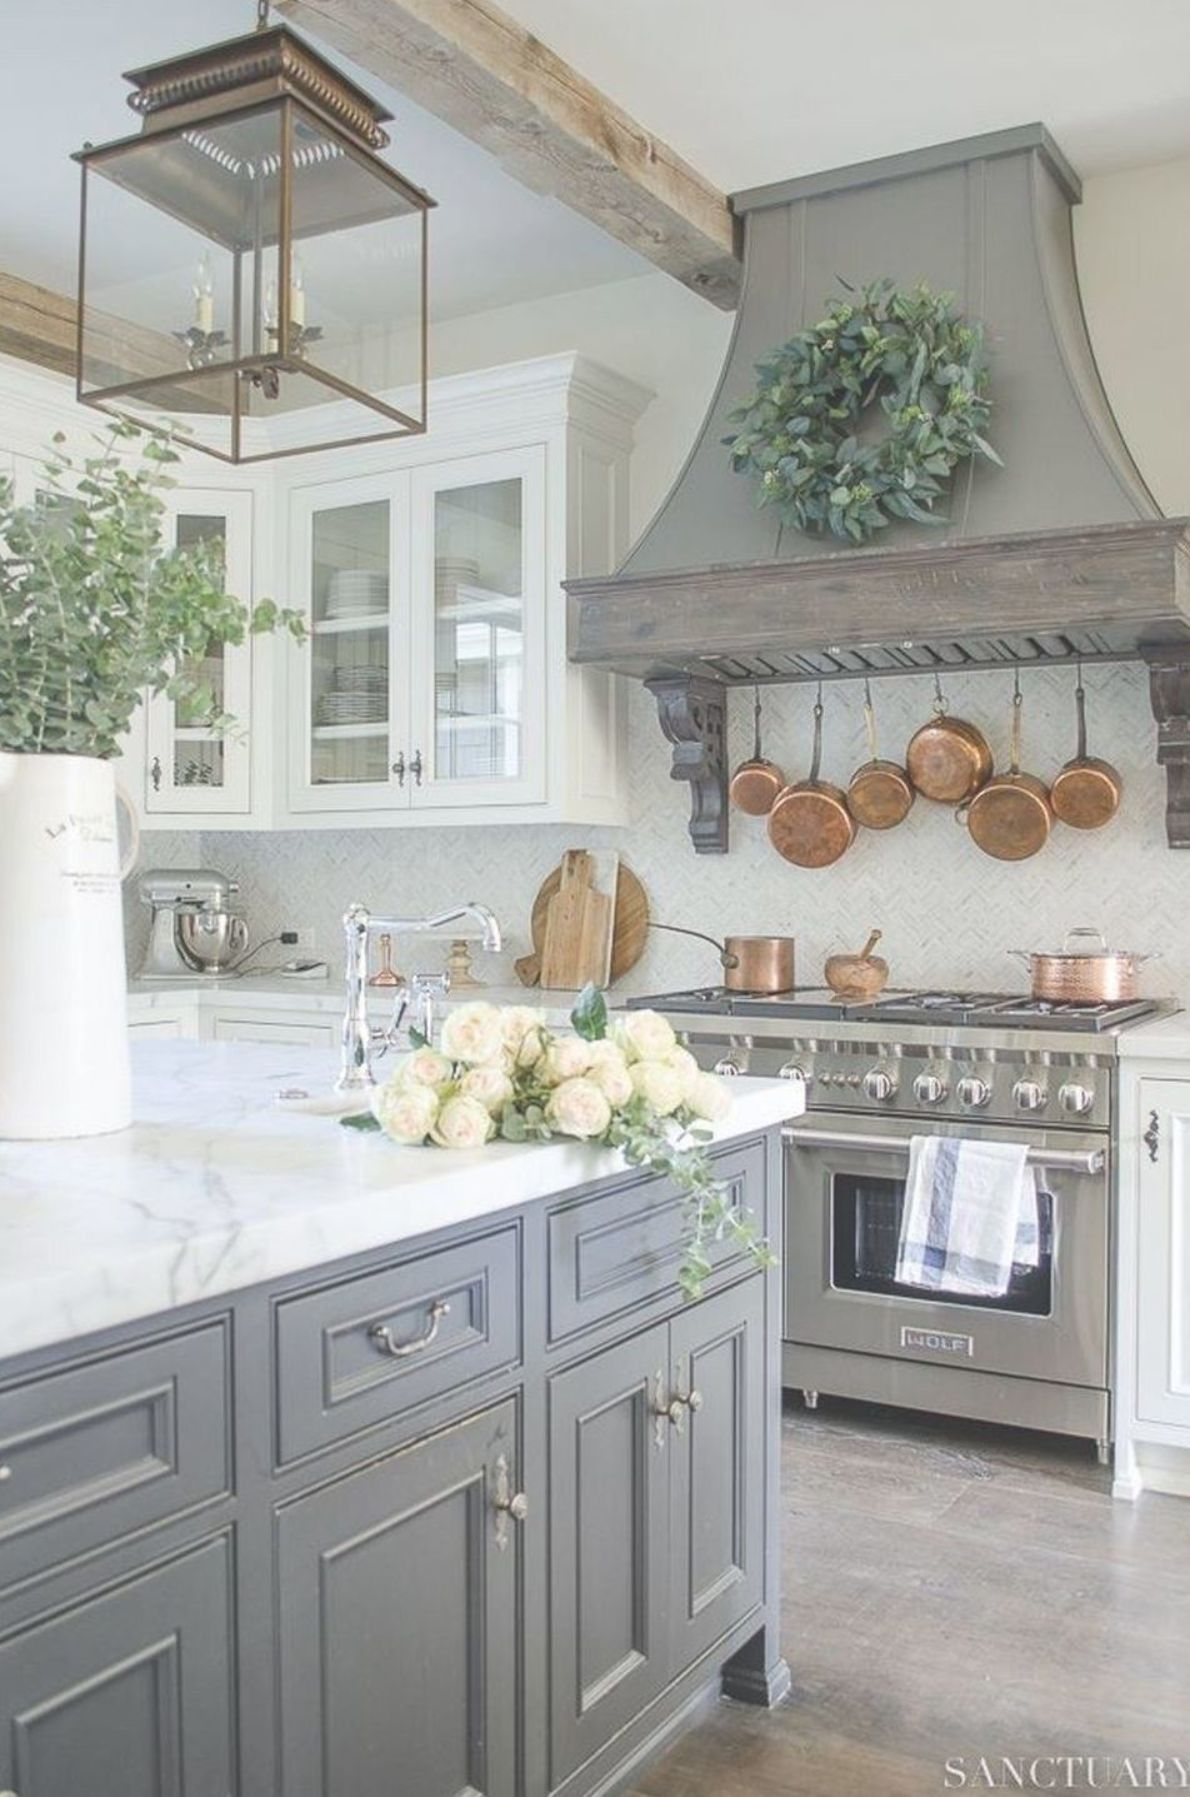 The Best French Country Style Kitchen Decor Ideas 4  Cottage